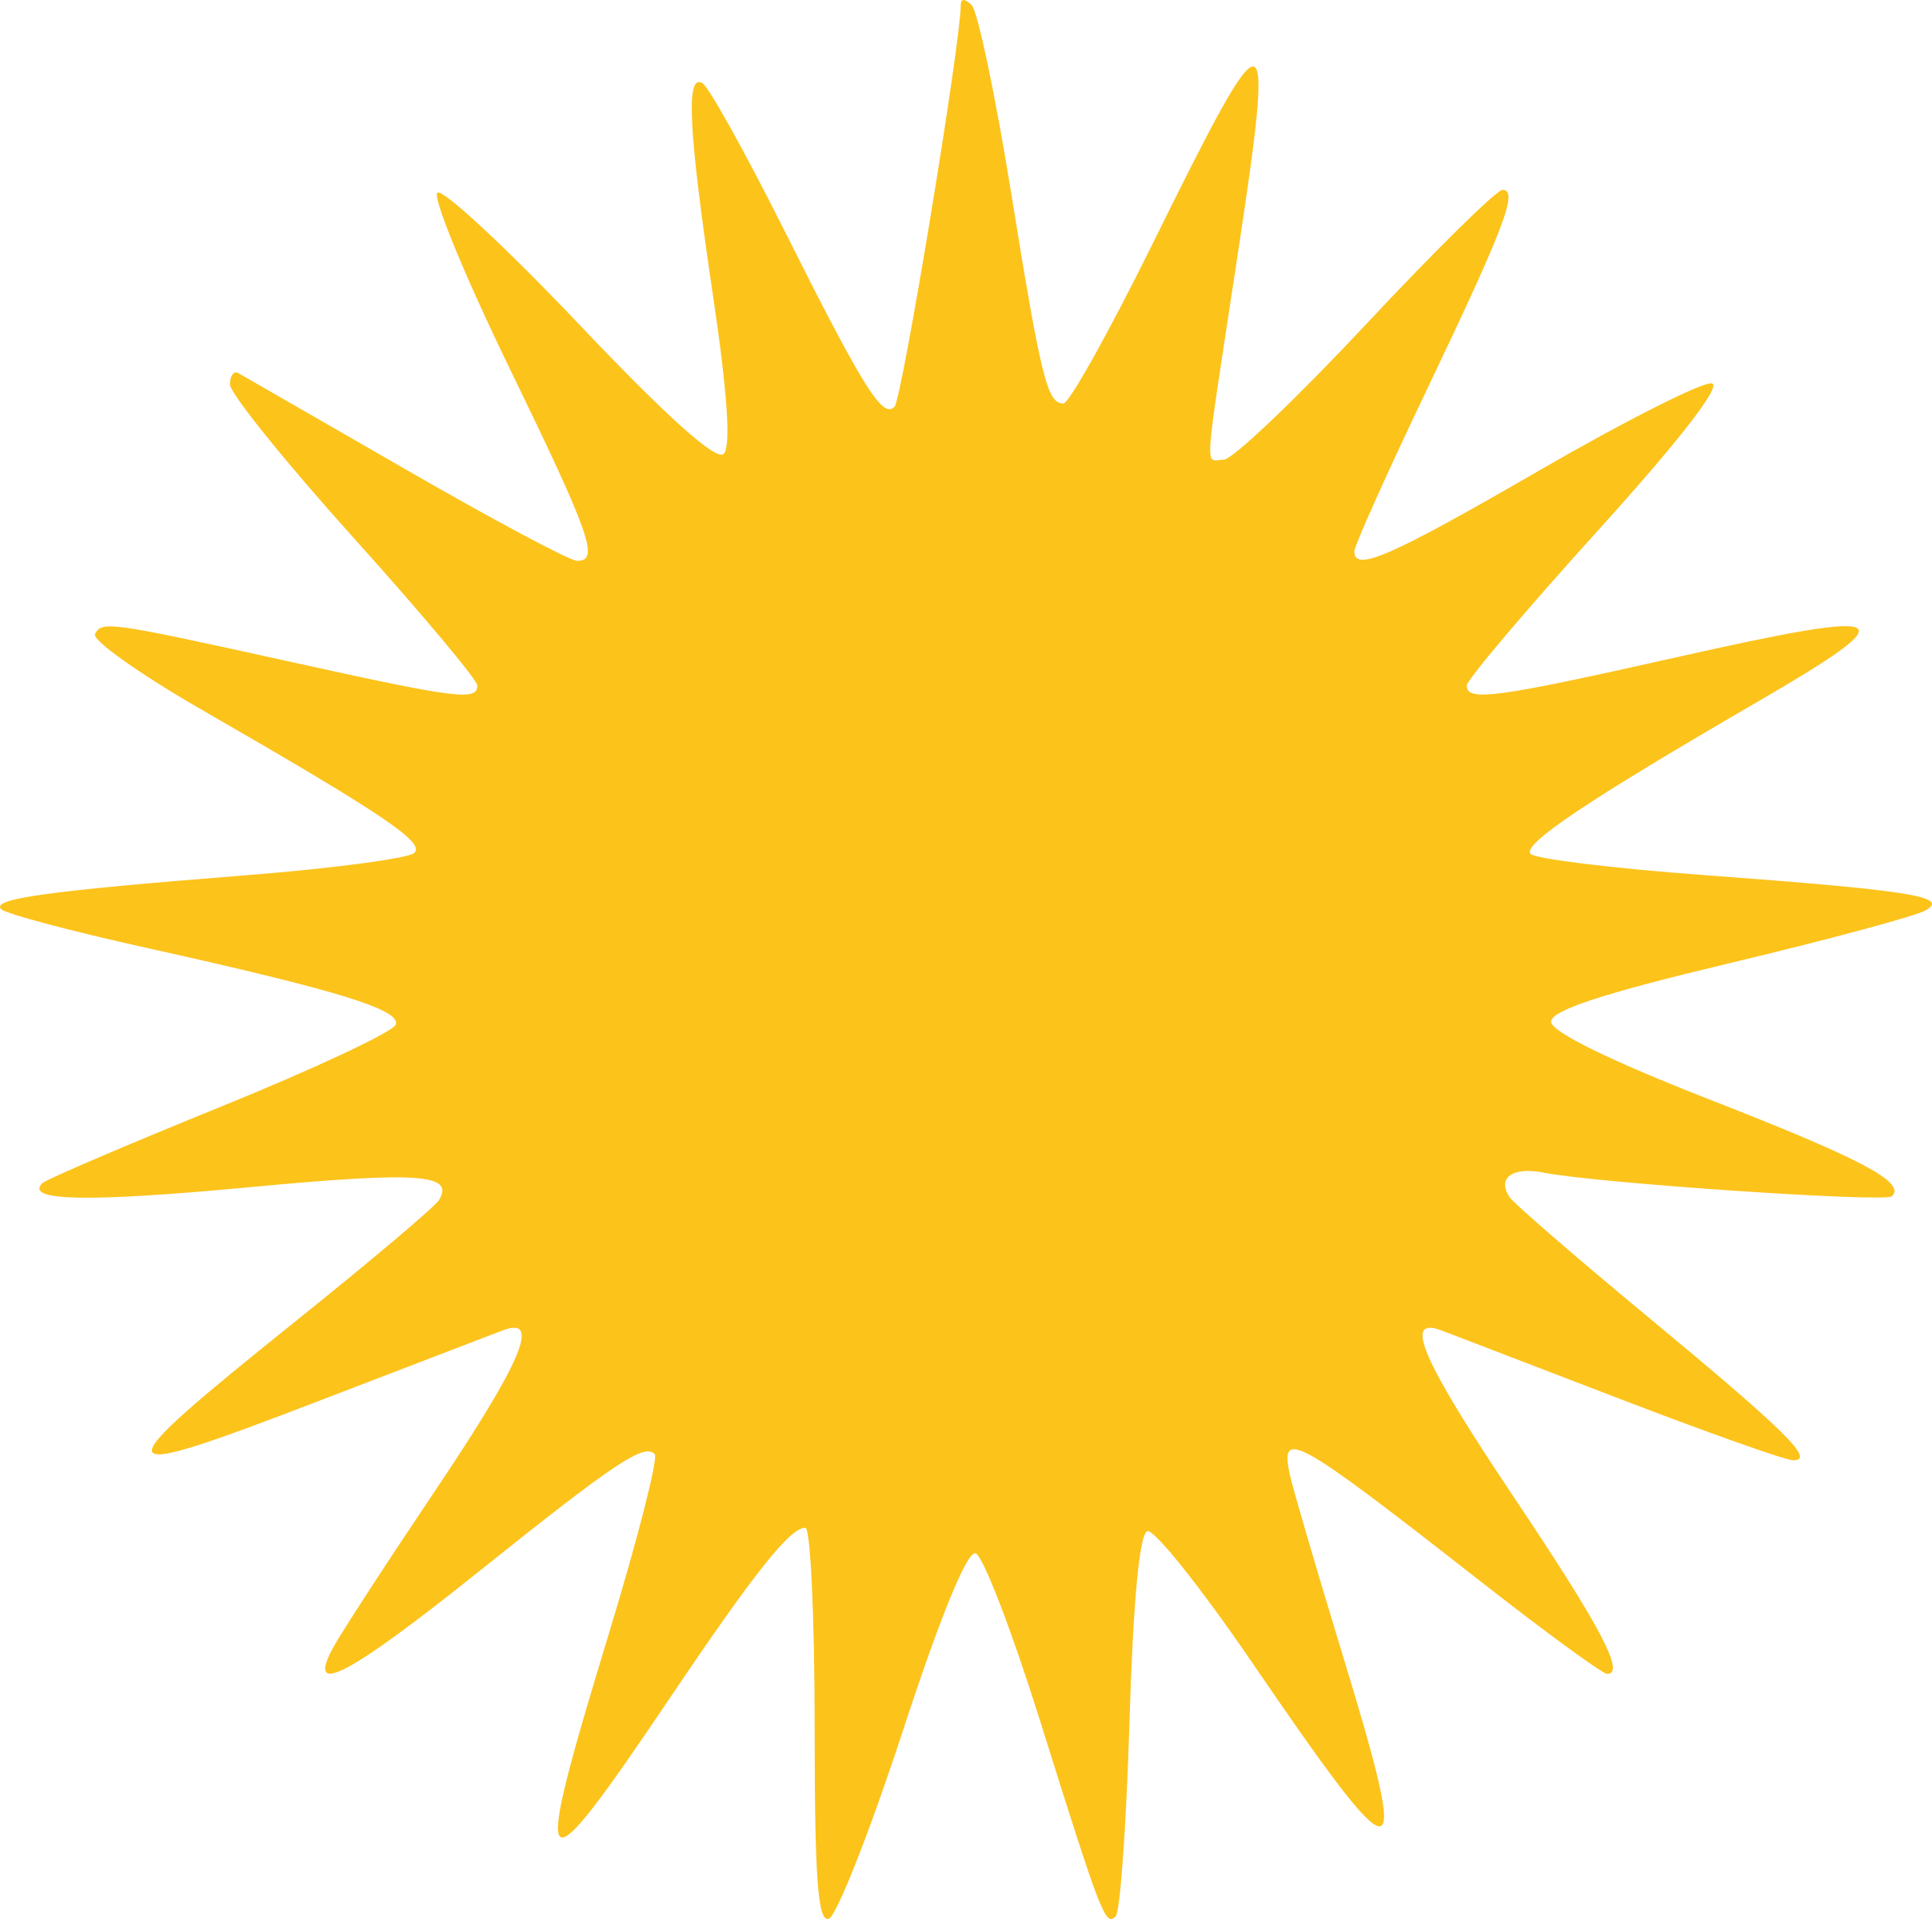 Sun Rays Clipart Png | Free download on ClipArtMag